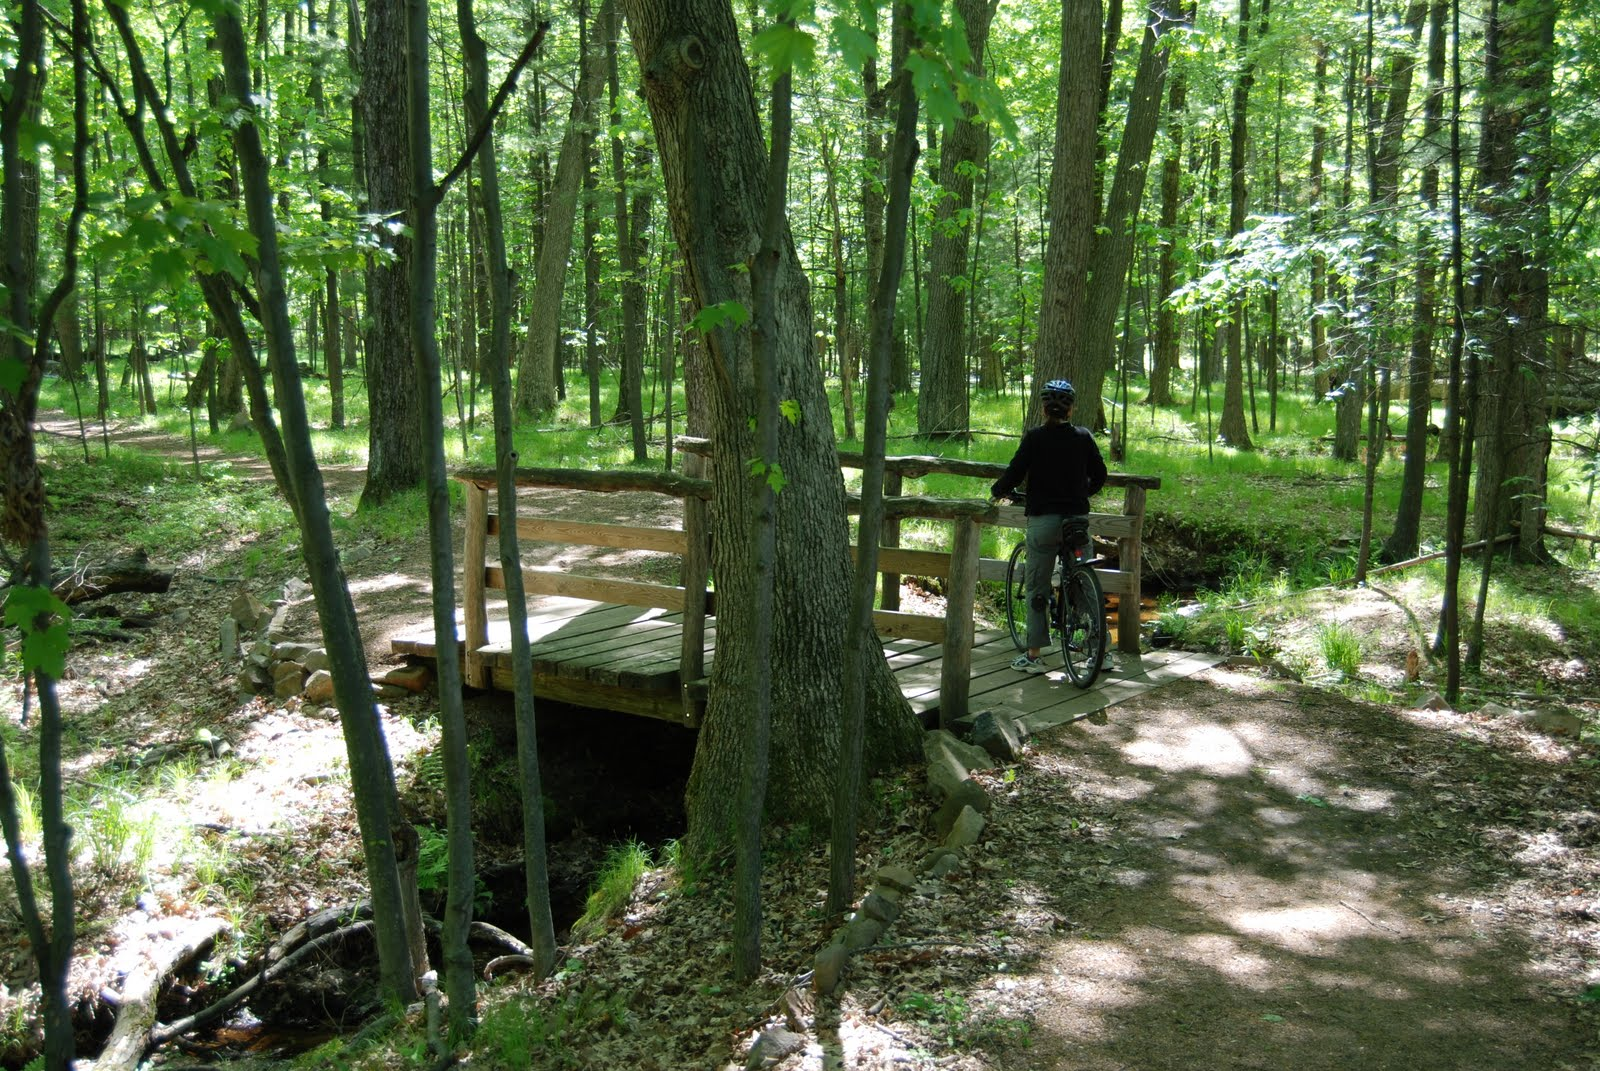 Rustic bridge in Schmeeckle Reserve, University Trail